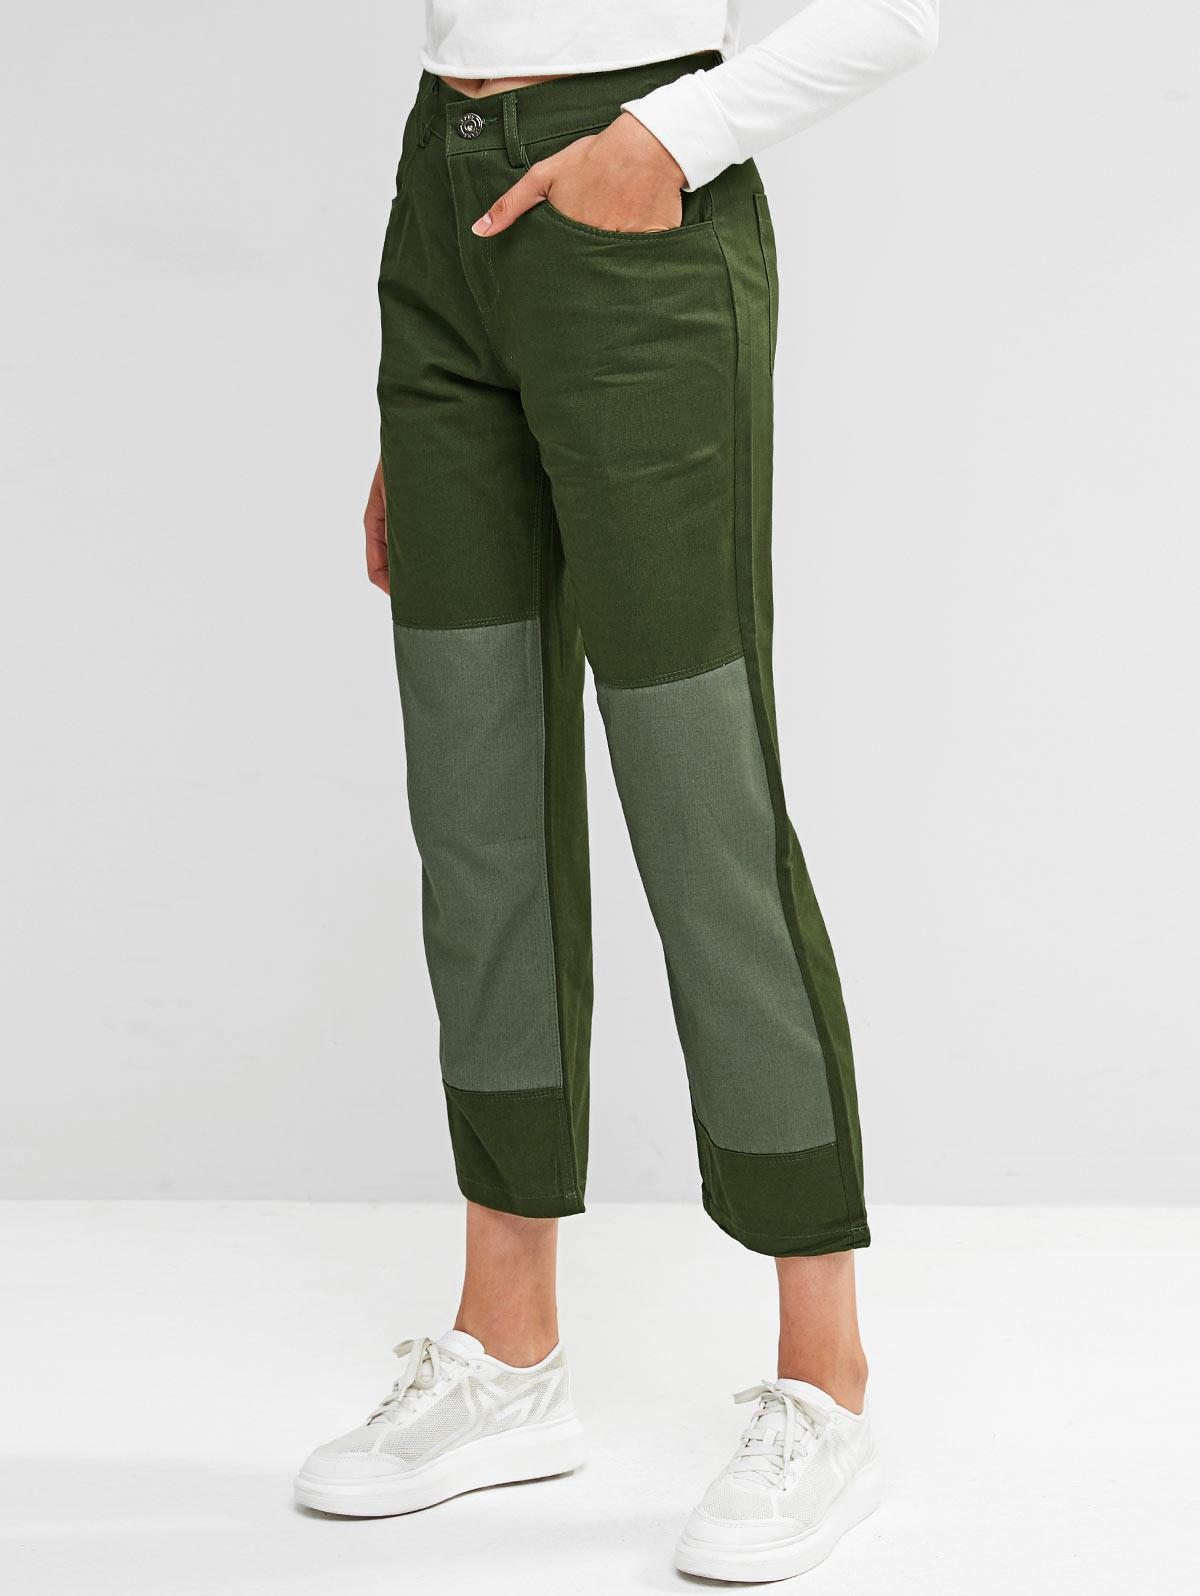 Two Tone Zip Fly Pocket Chino Pants, Army green